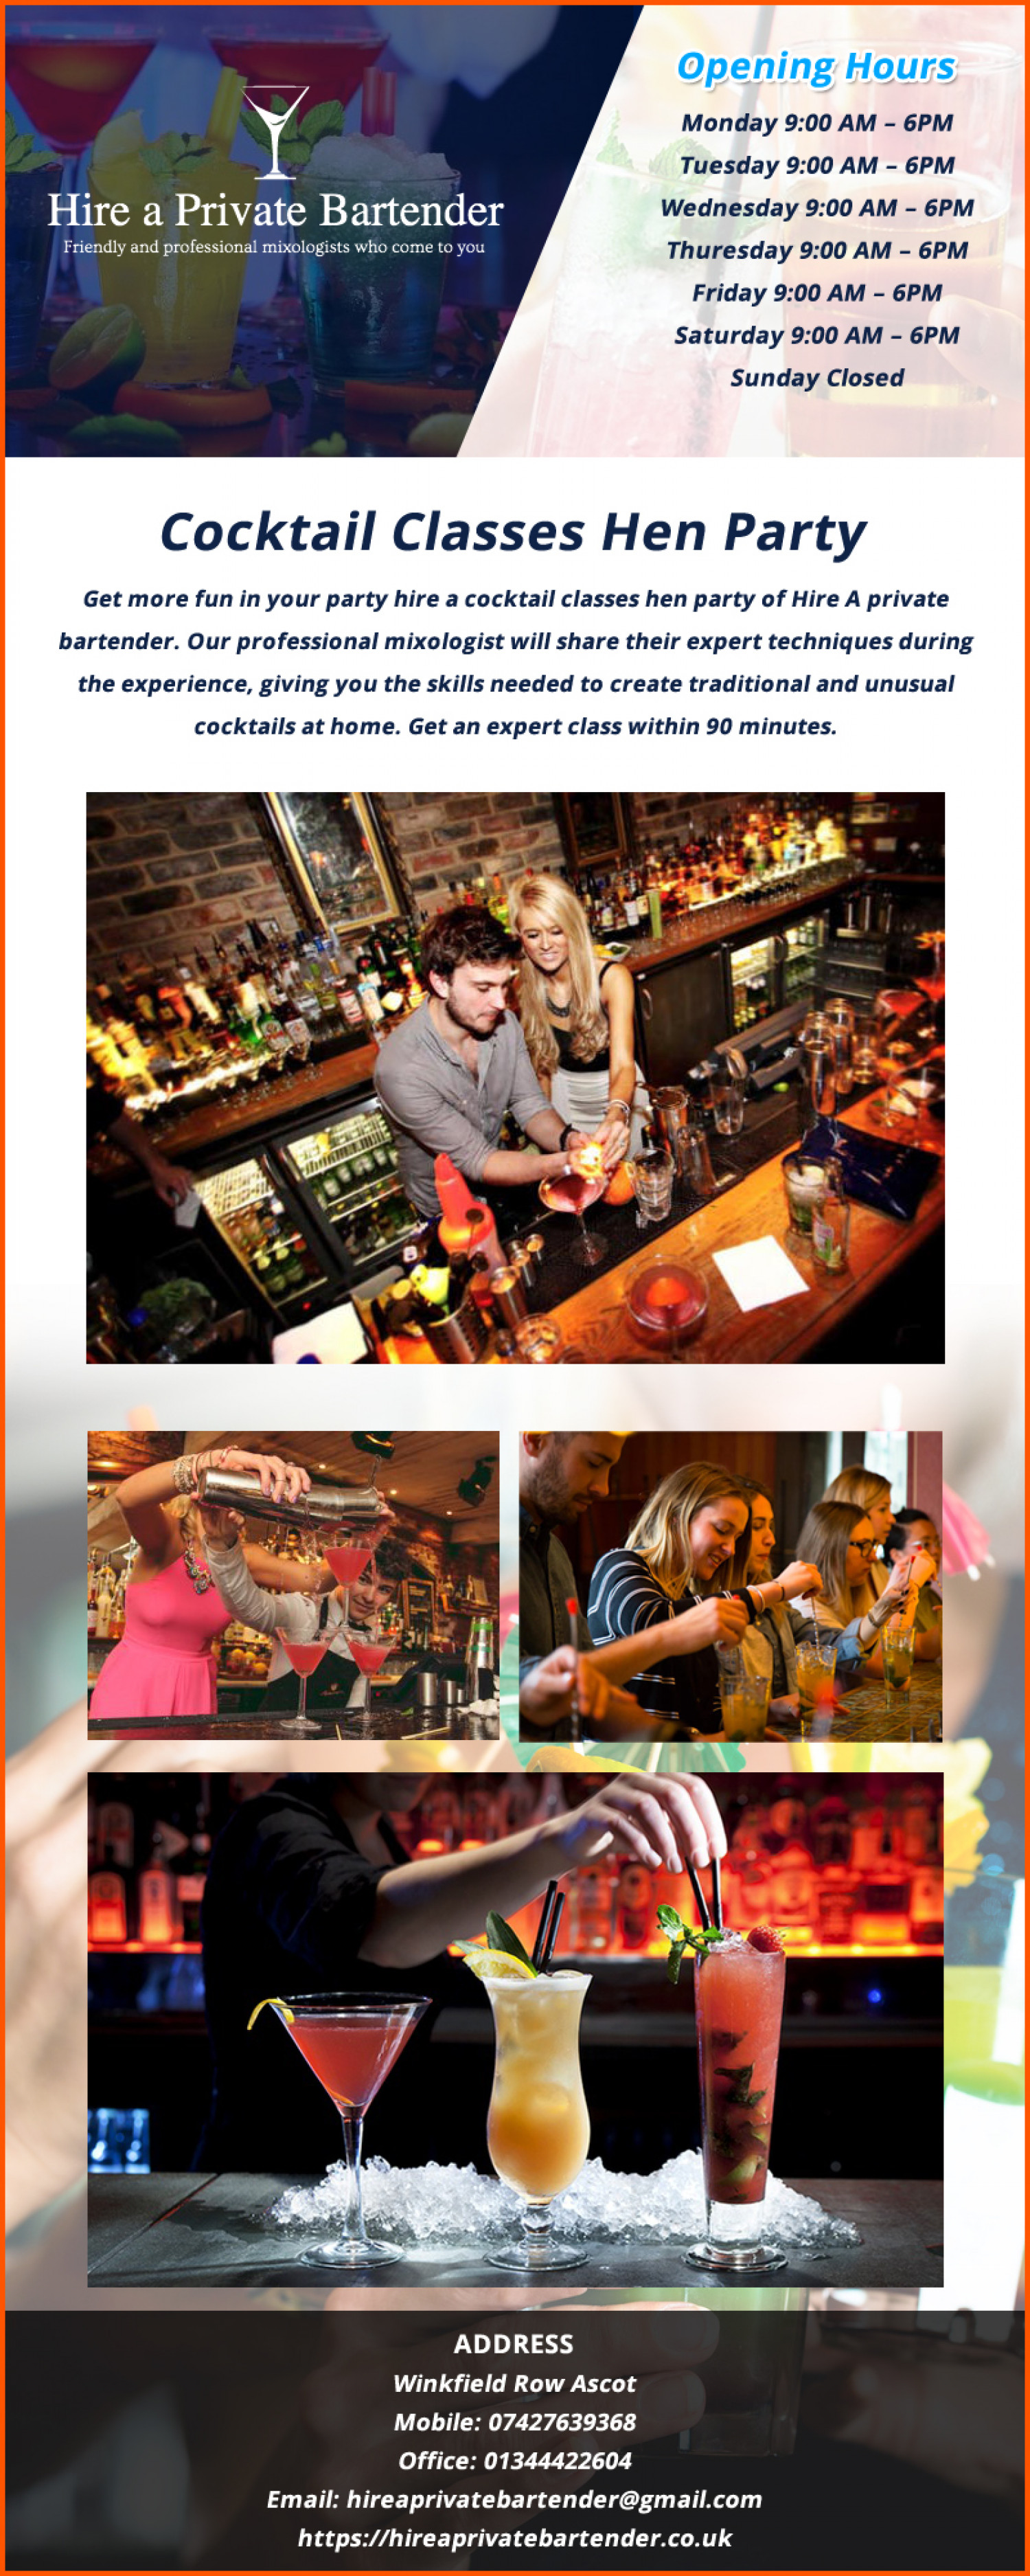 Cocktail Classes Hen Party- Best Service Ever Infographic